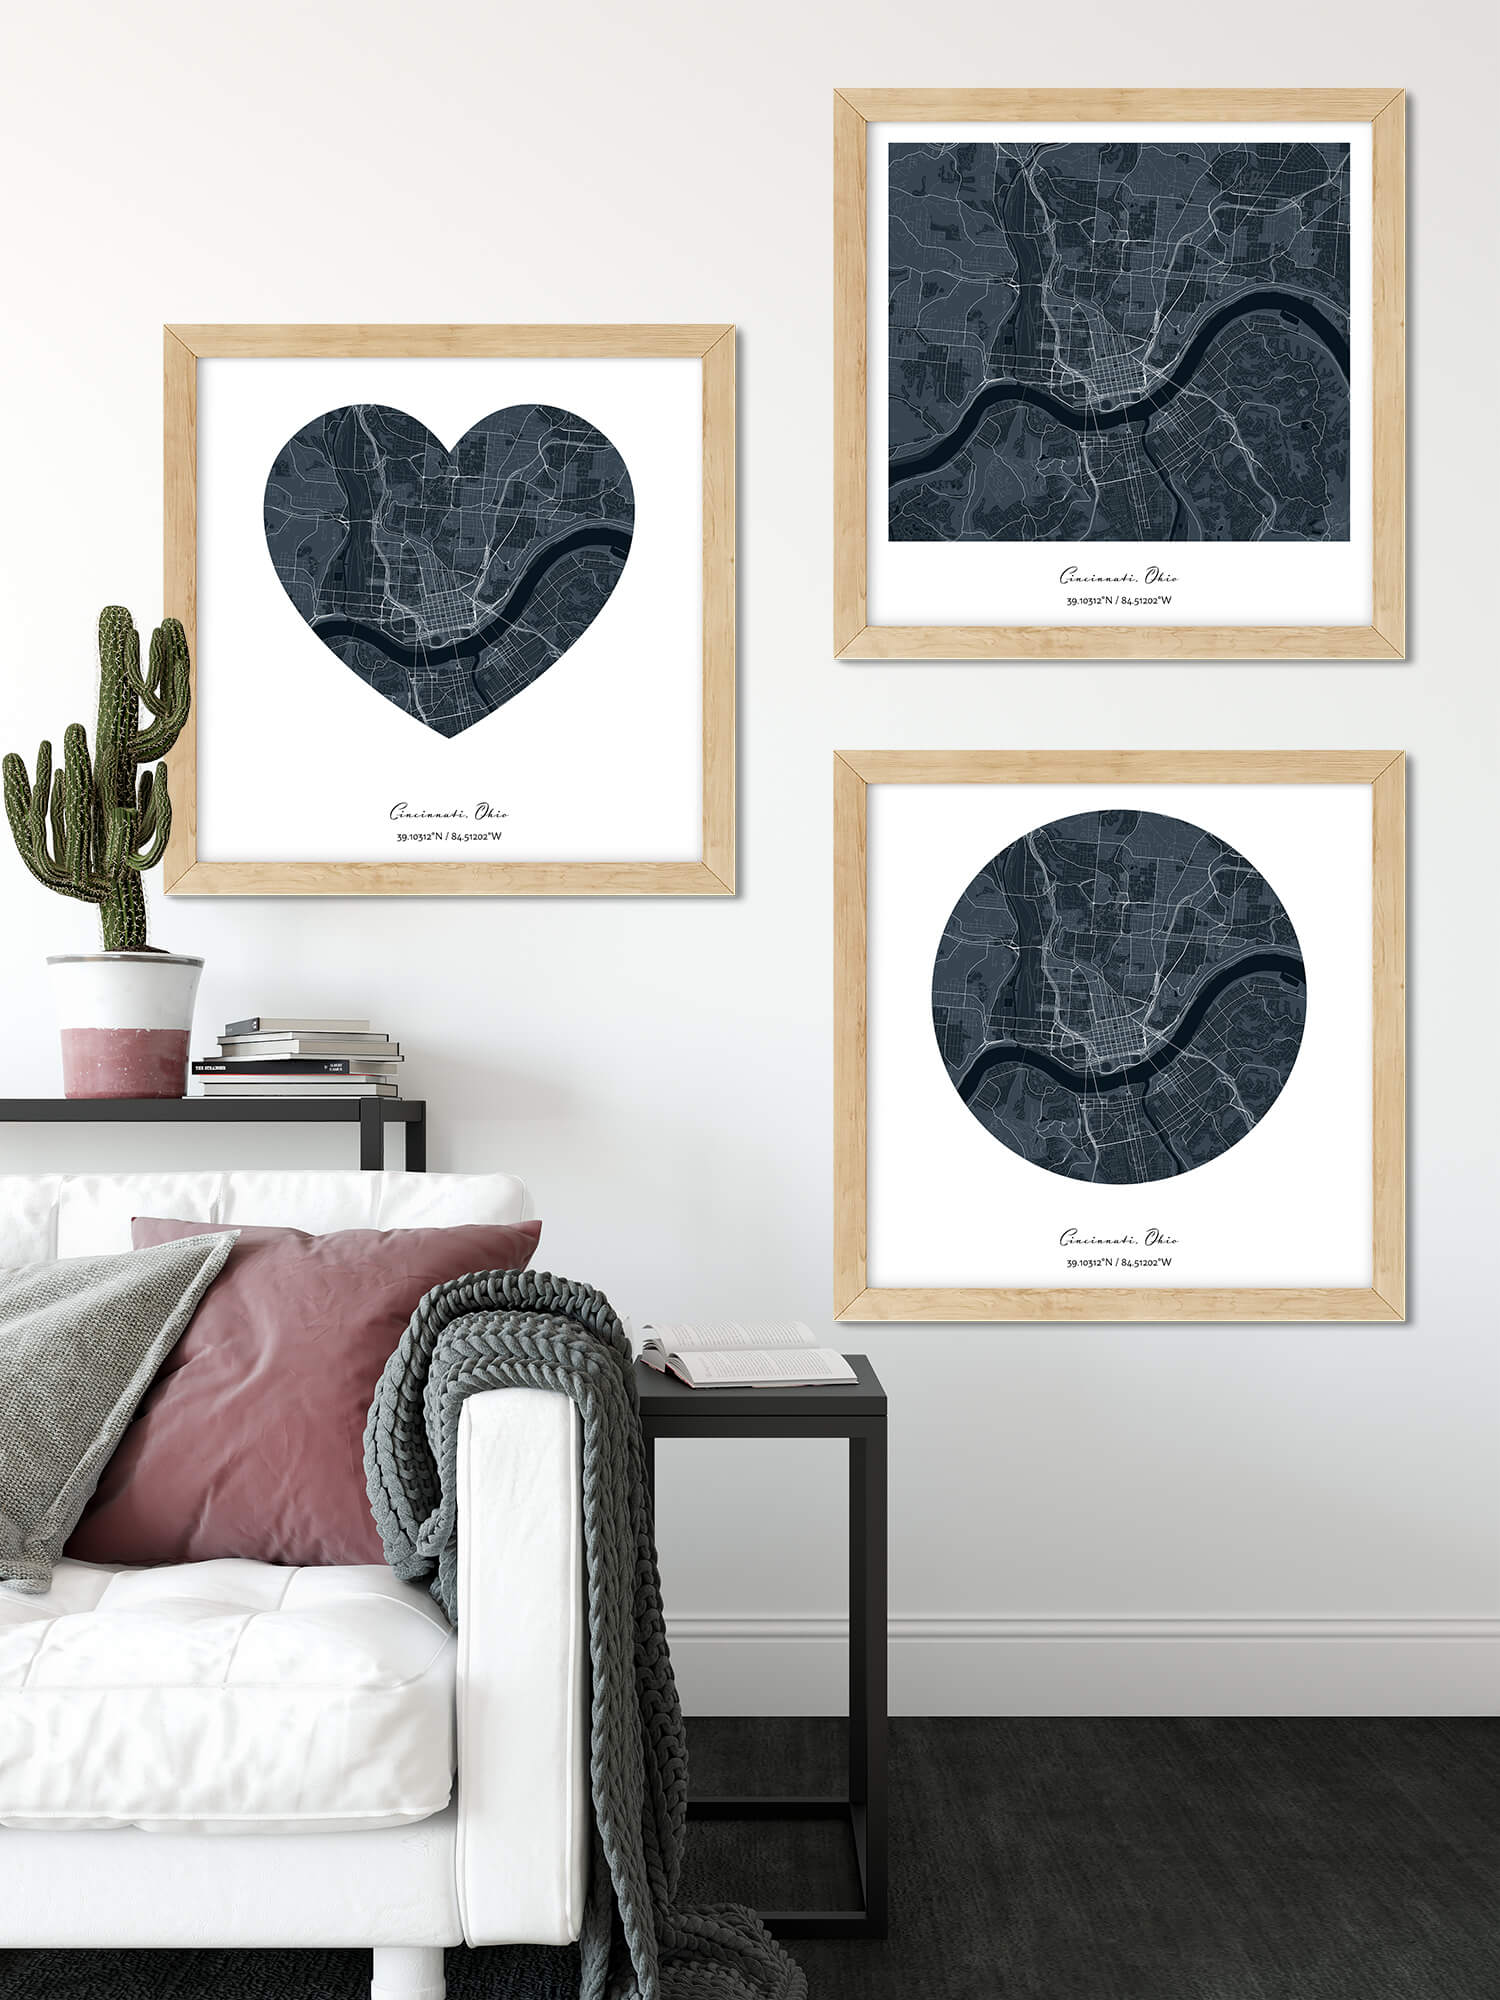 Three Custom city map prints - heart-shaped, rounded and square